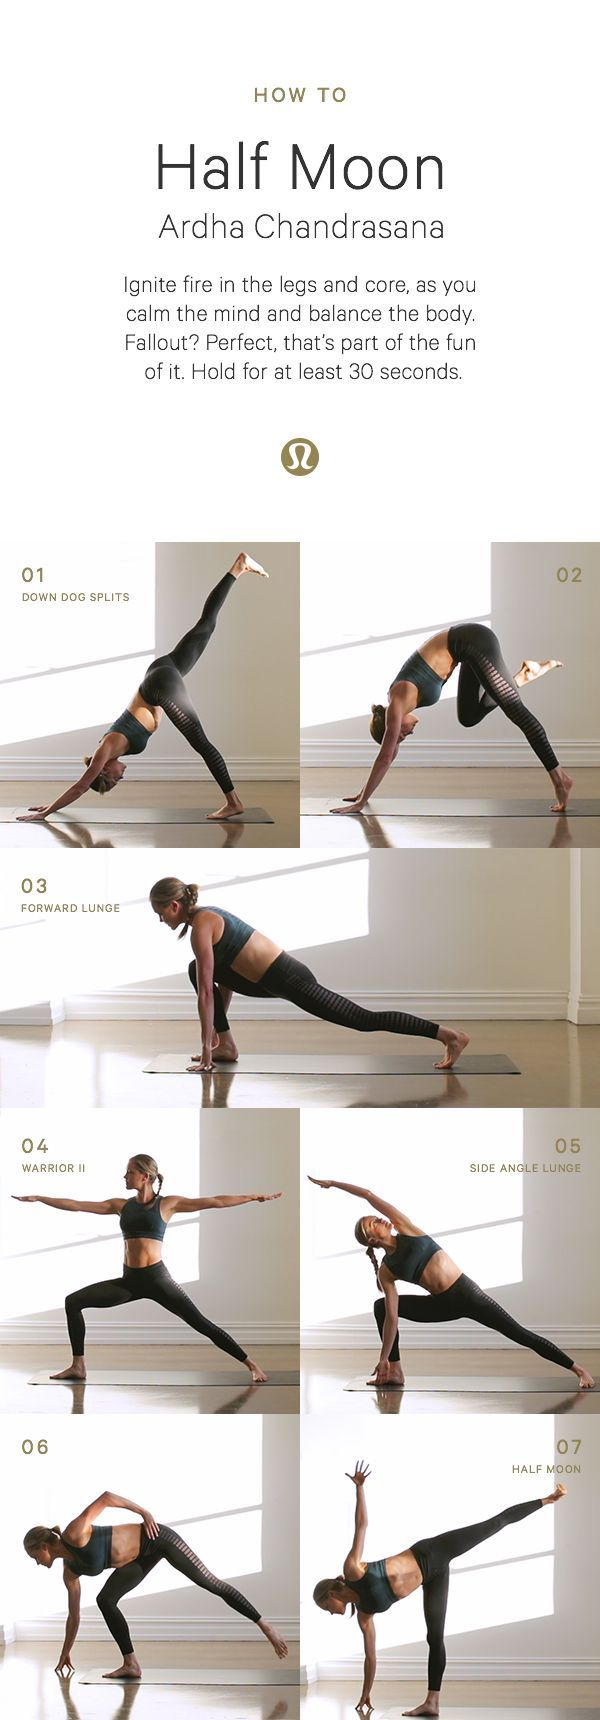 Half moon yoga set #pilatesyoga